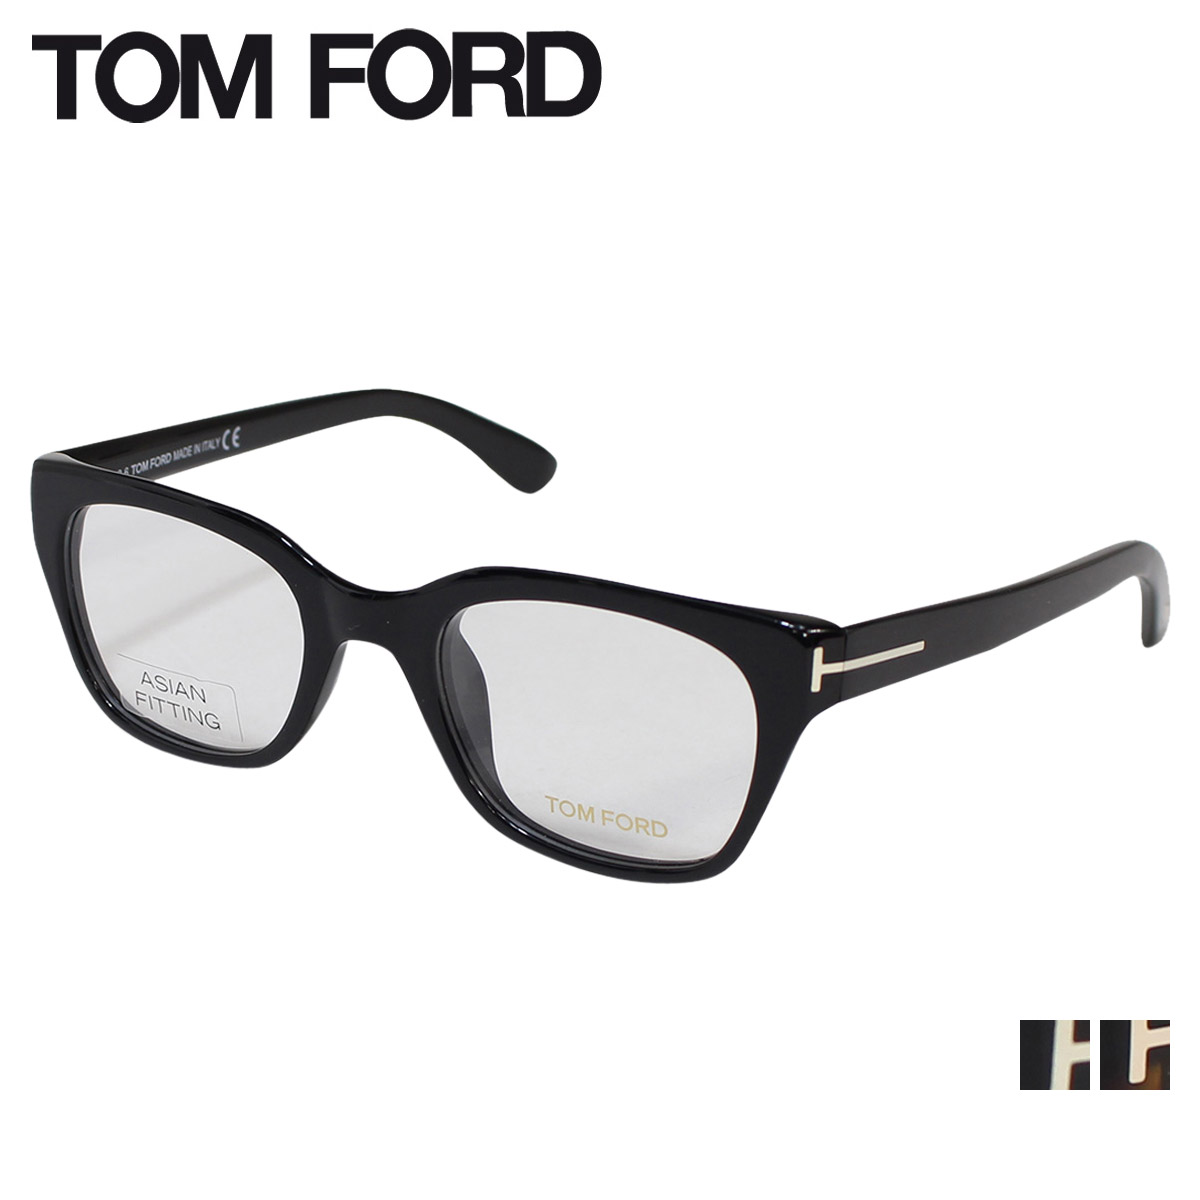 6b48298801 Sugar Online Shop  Tom Ford glasses TOM FORD eyewear men s ladies ...